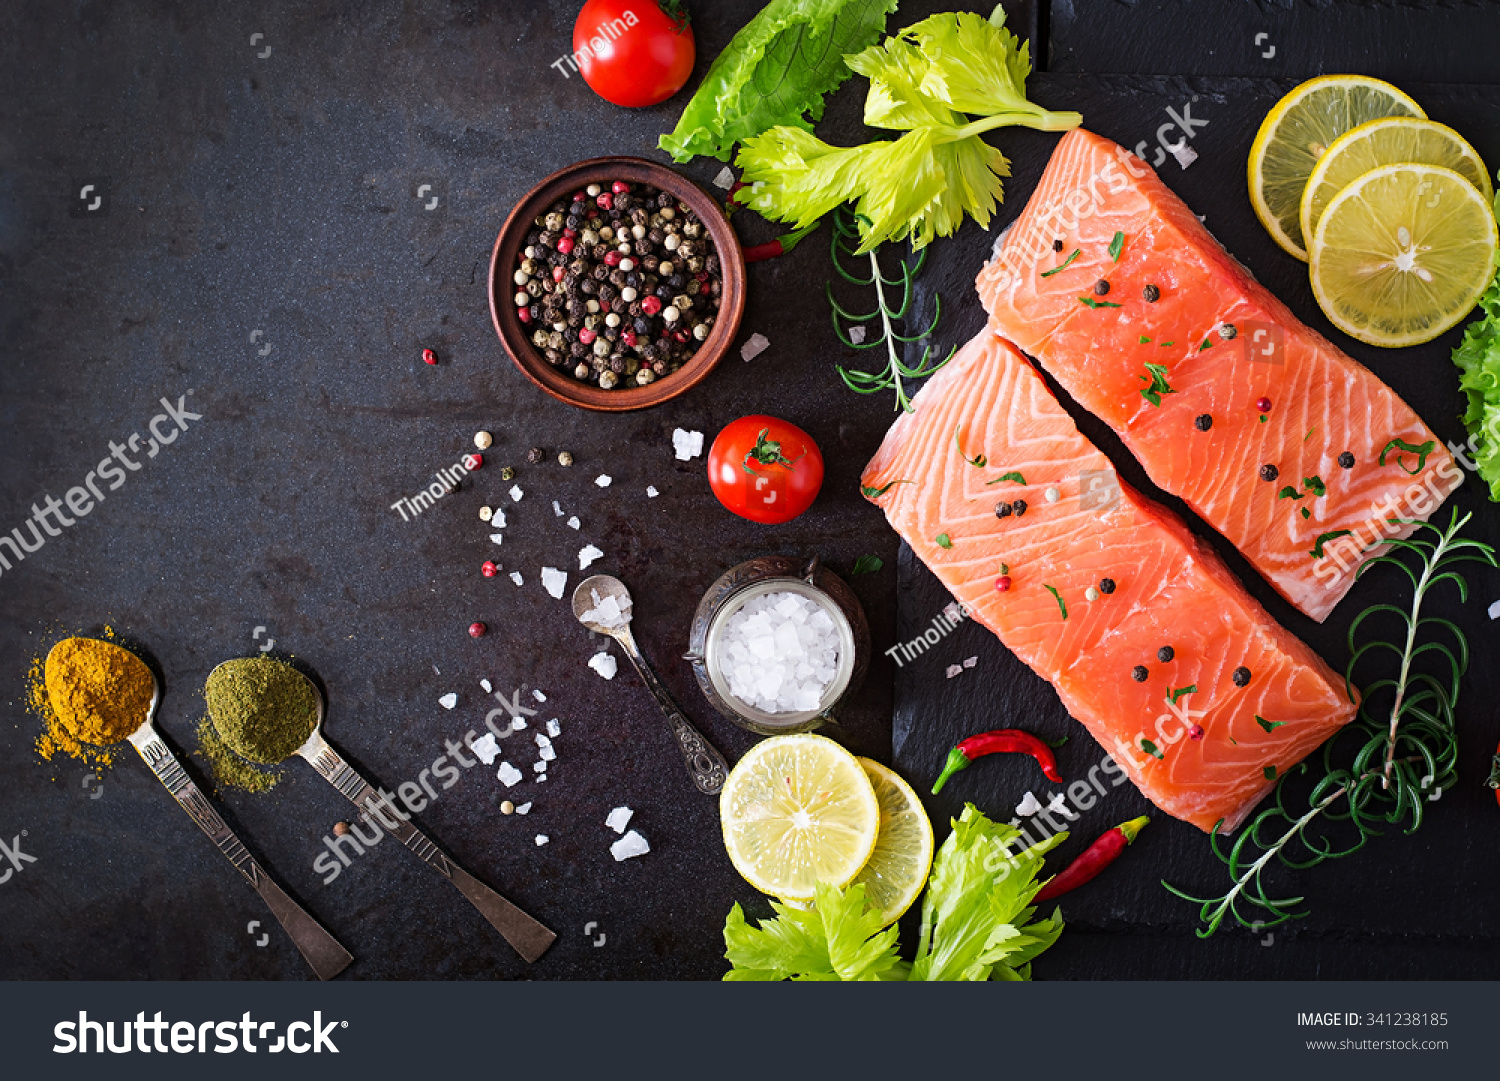 Raw salmon fillet and ingredients for cooking on a dark background in a rustic style Top view